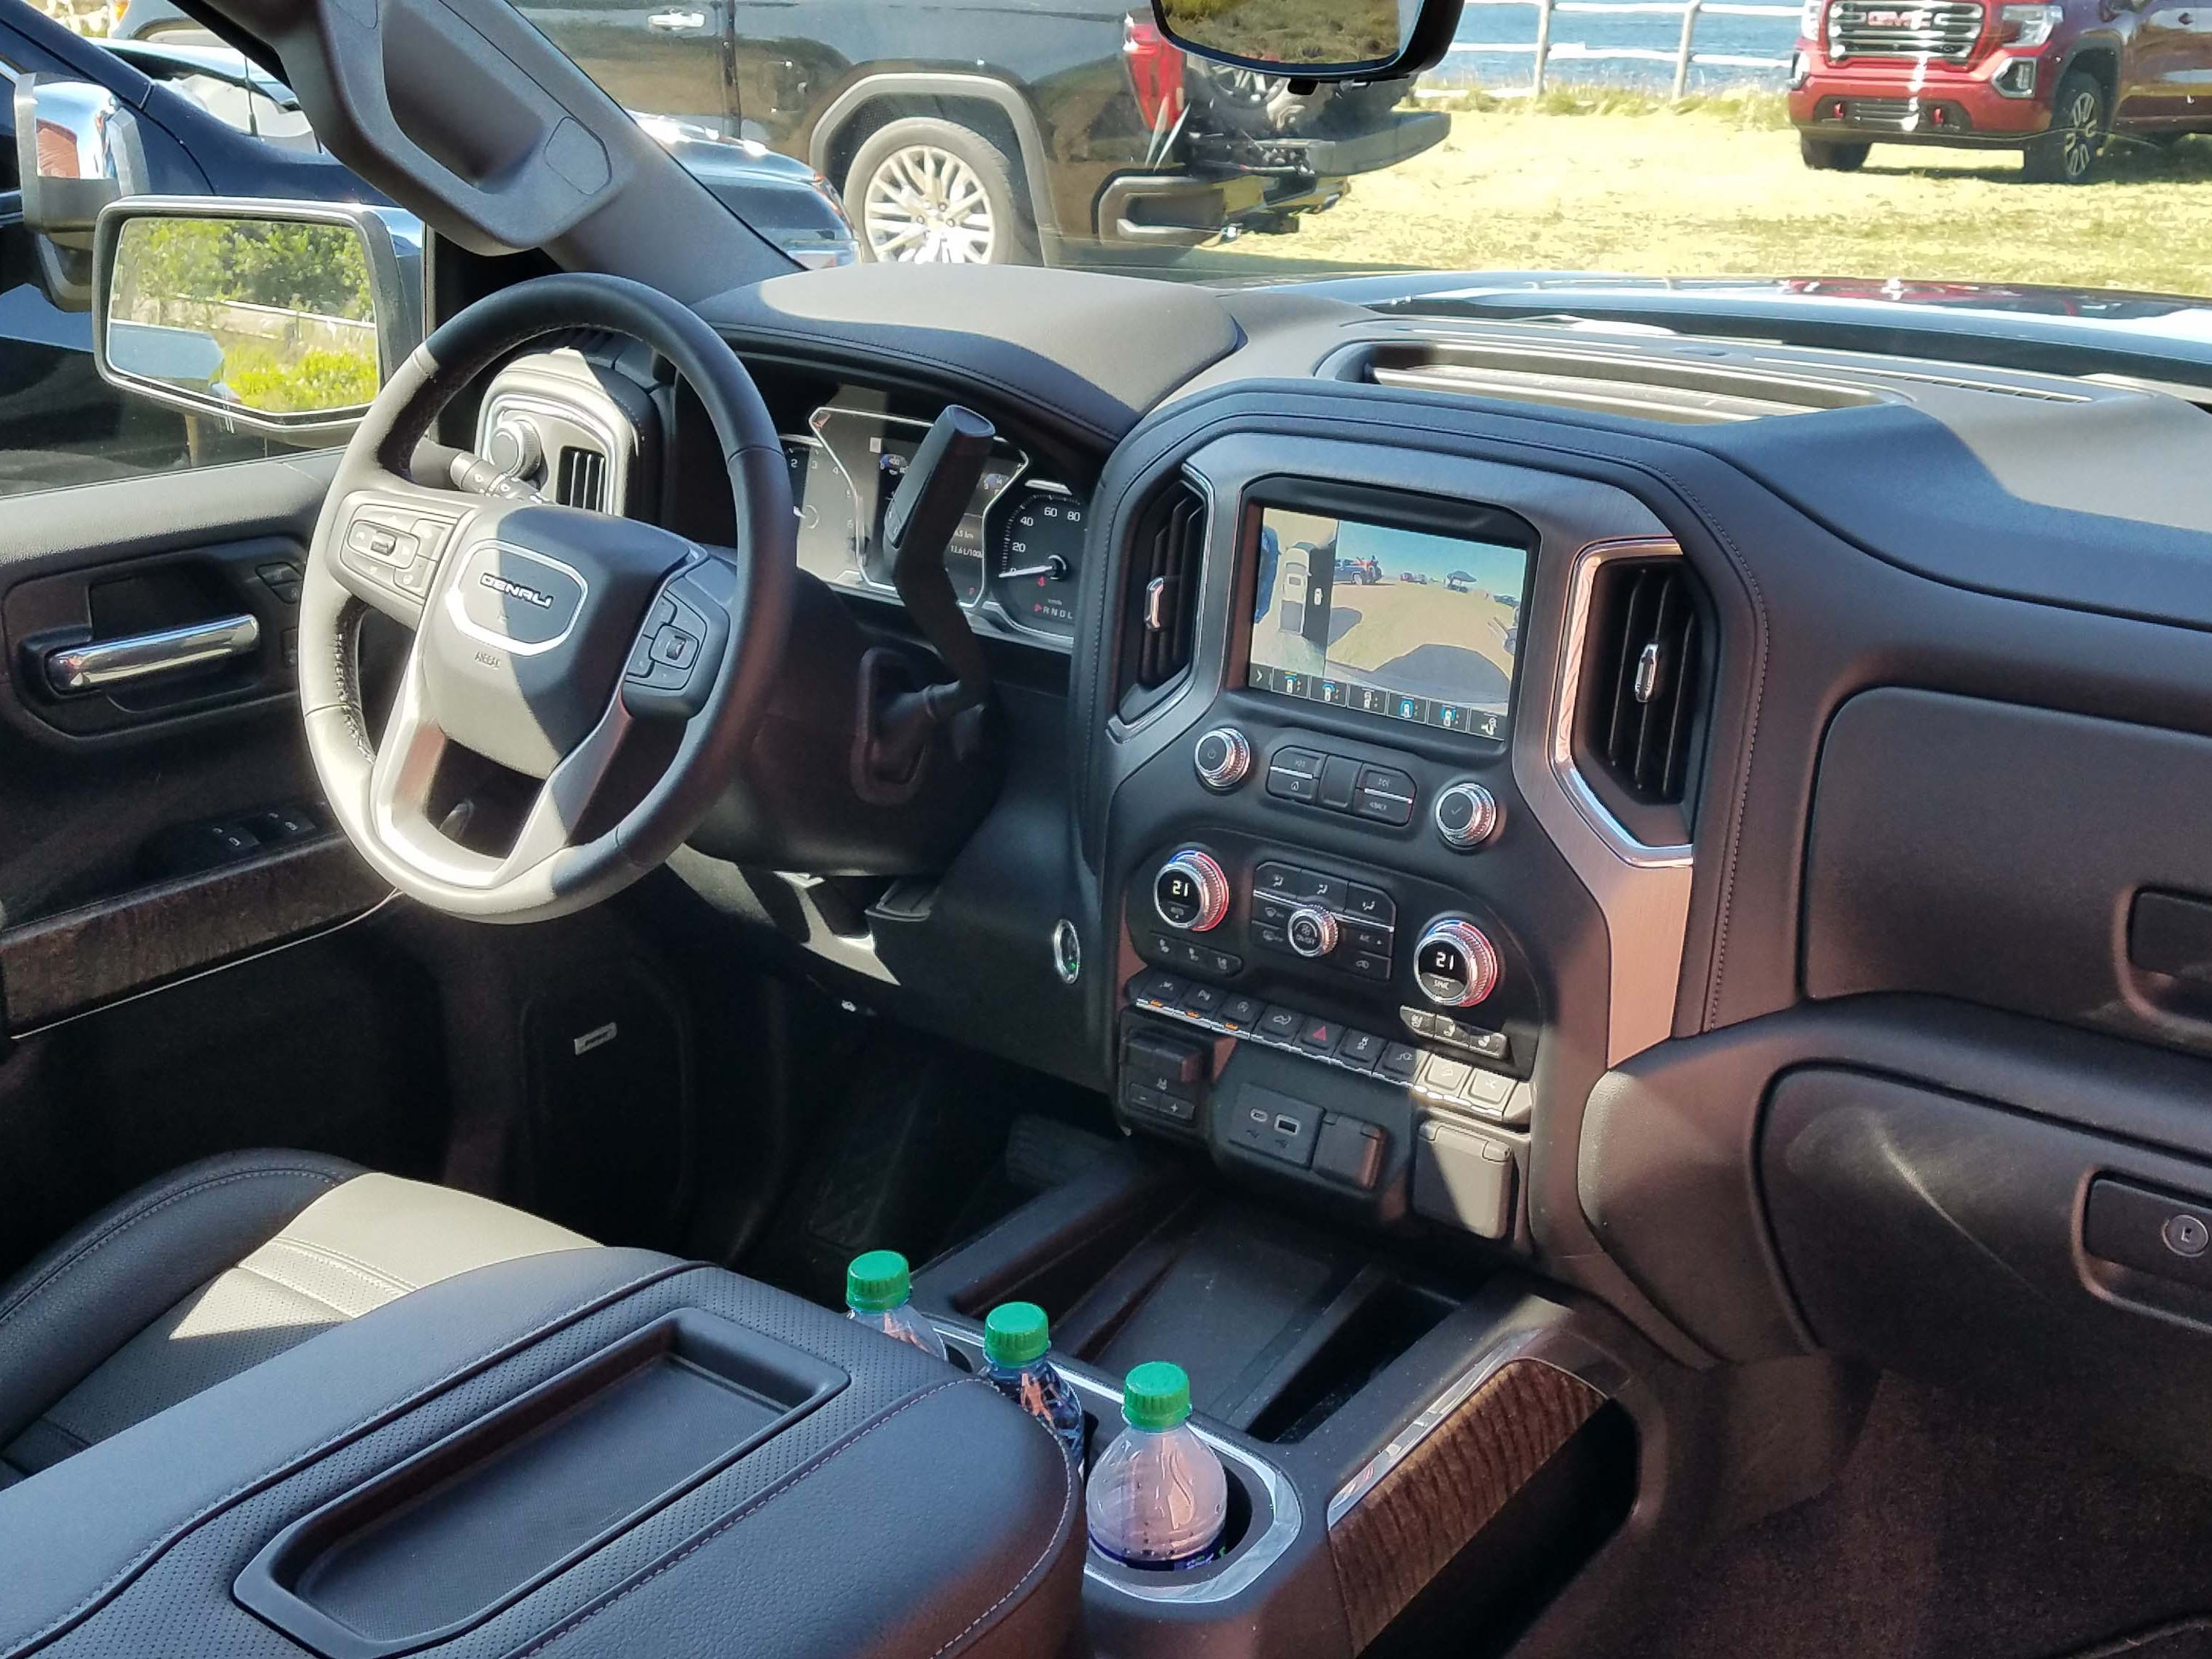 The interior of the 2019 GMC Sierra Denali is not as posh as the upscale Ram 1500 — but its wood-trimmed and leather trimmings are plenty nice, and ergonomics are excellent.